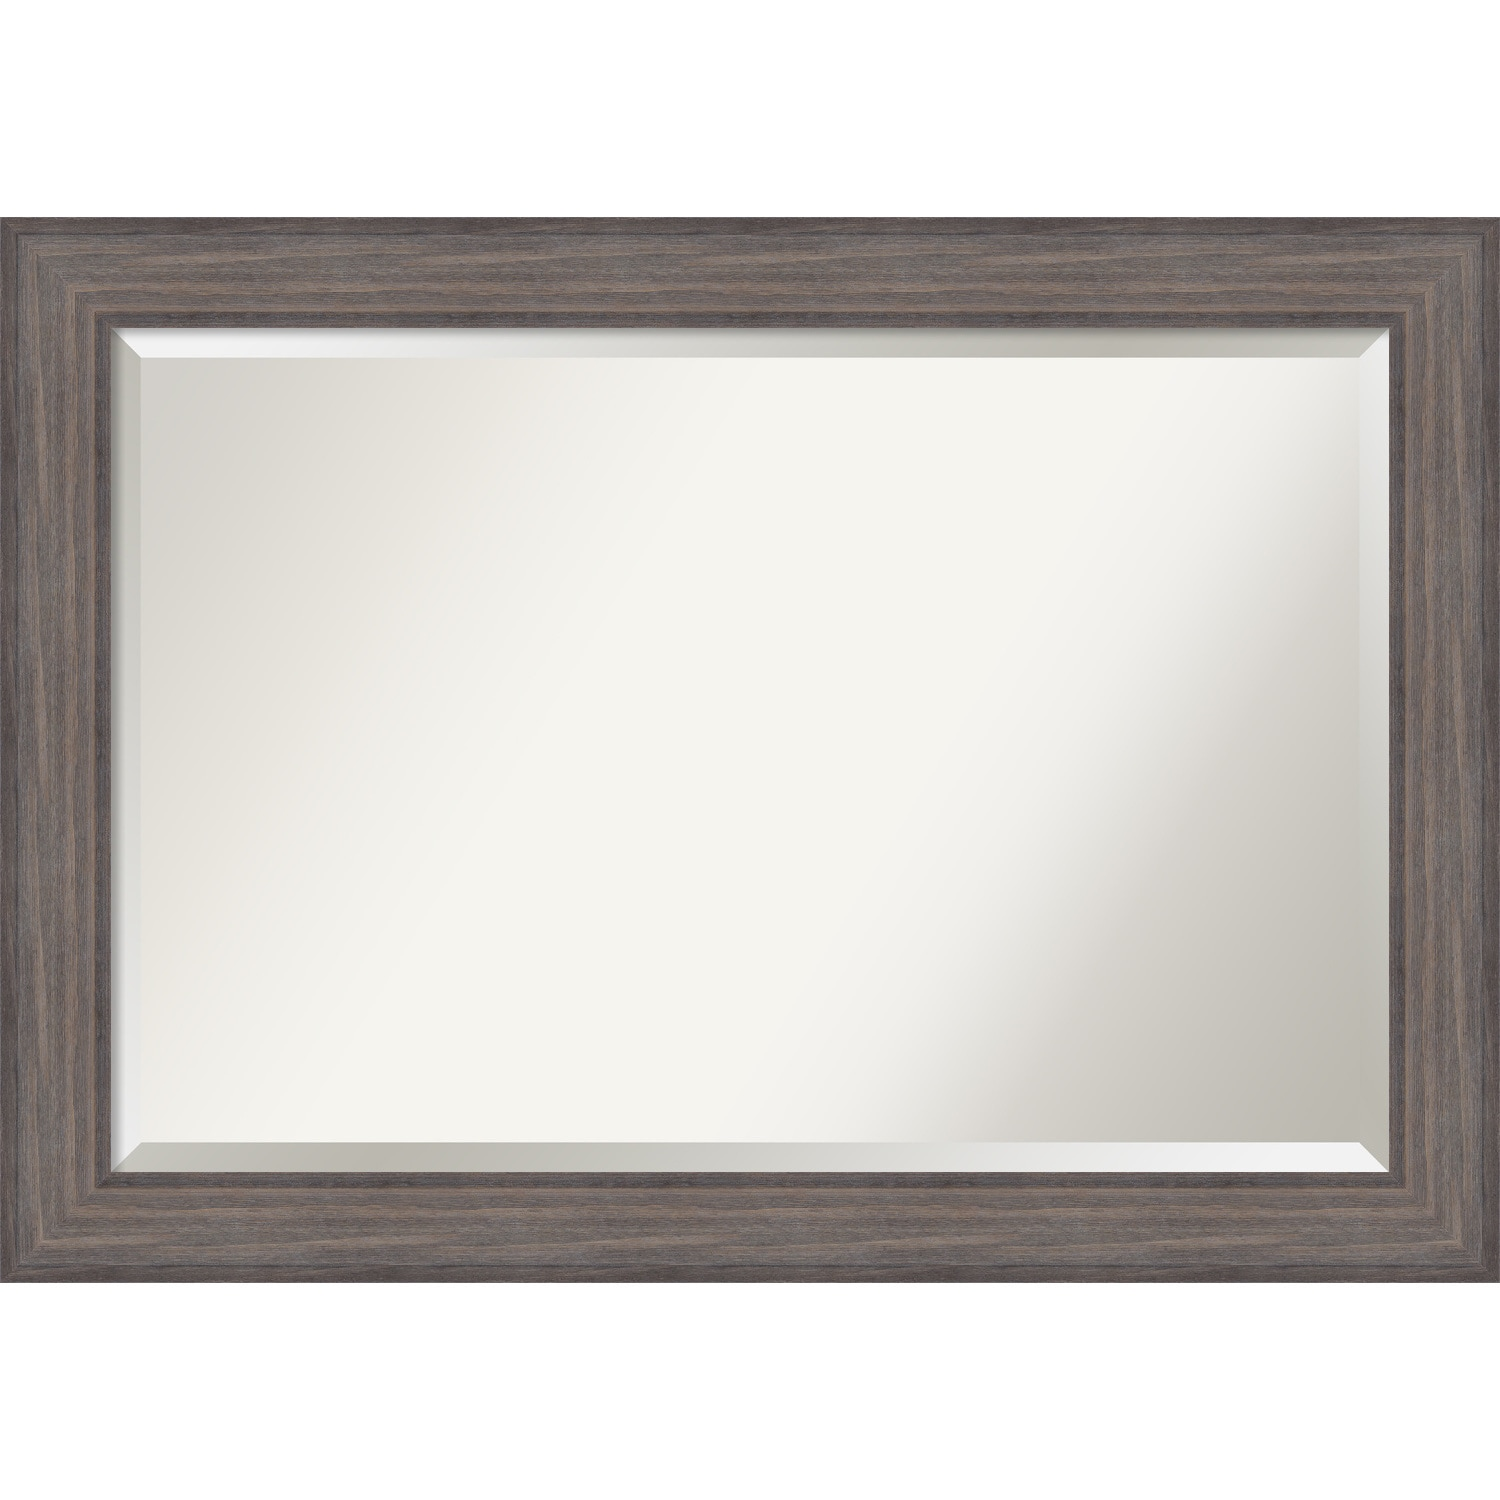 Bathroom Mirror Extra Large Country Barnwood 42 X 30 Inch Grey 29 25 41 0 741 Inches Deep